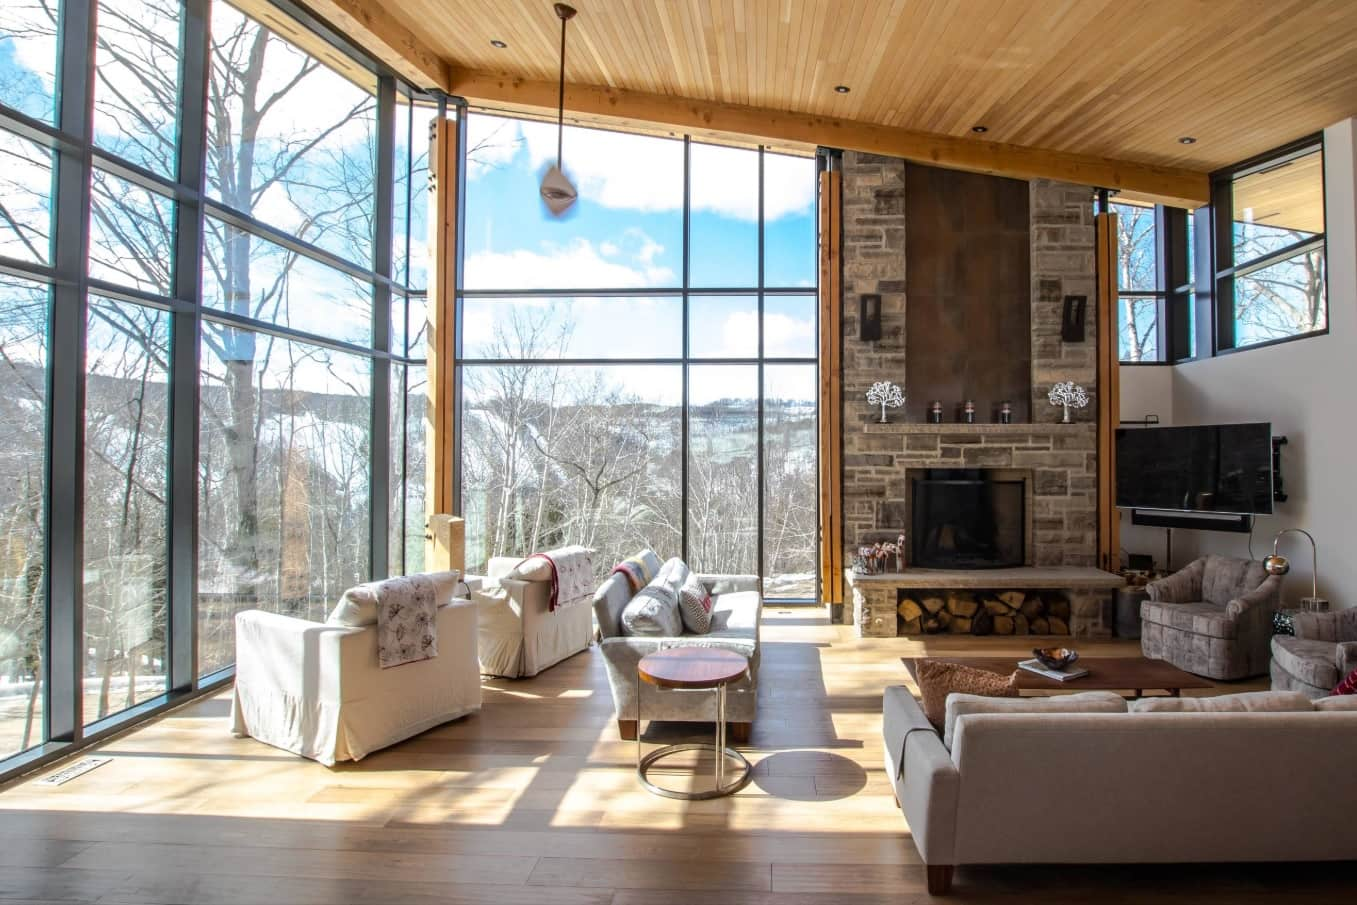 Chalet Style Interior Decoration: Relevance and Finishing Advice. Panoramic windows and stone wall decoration